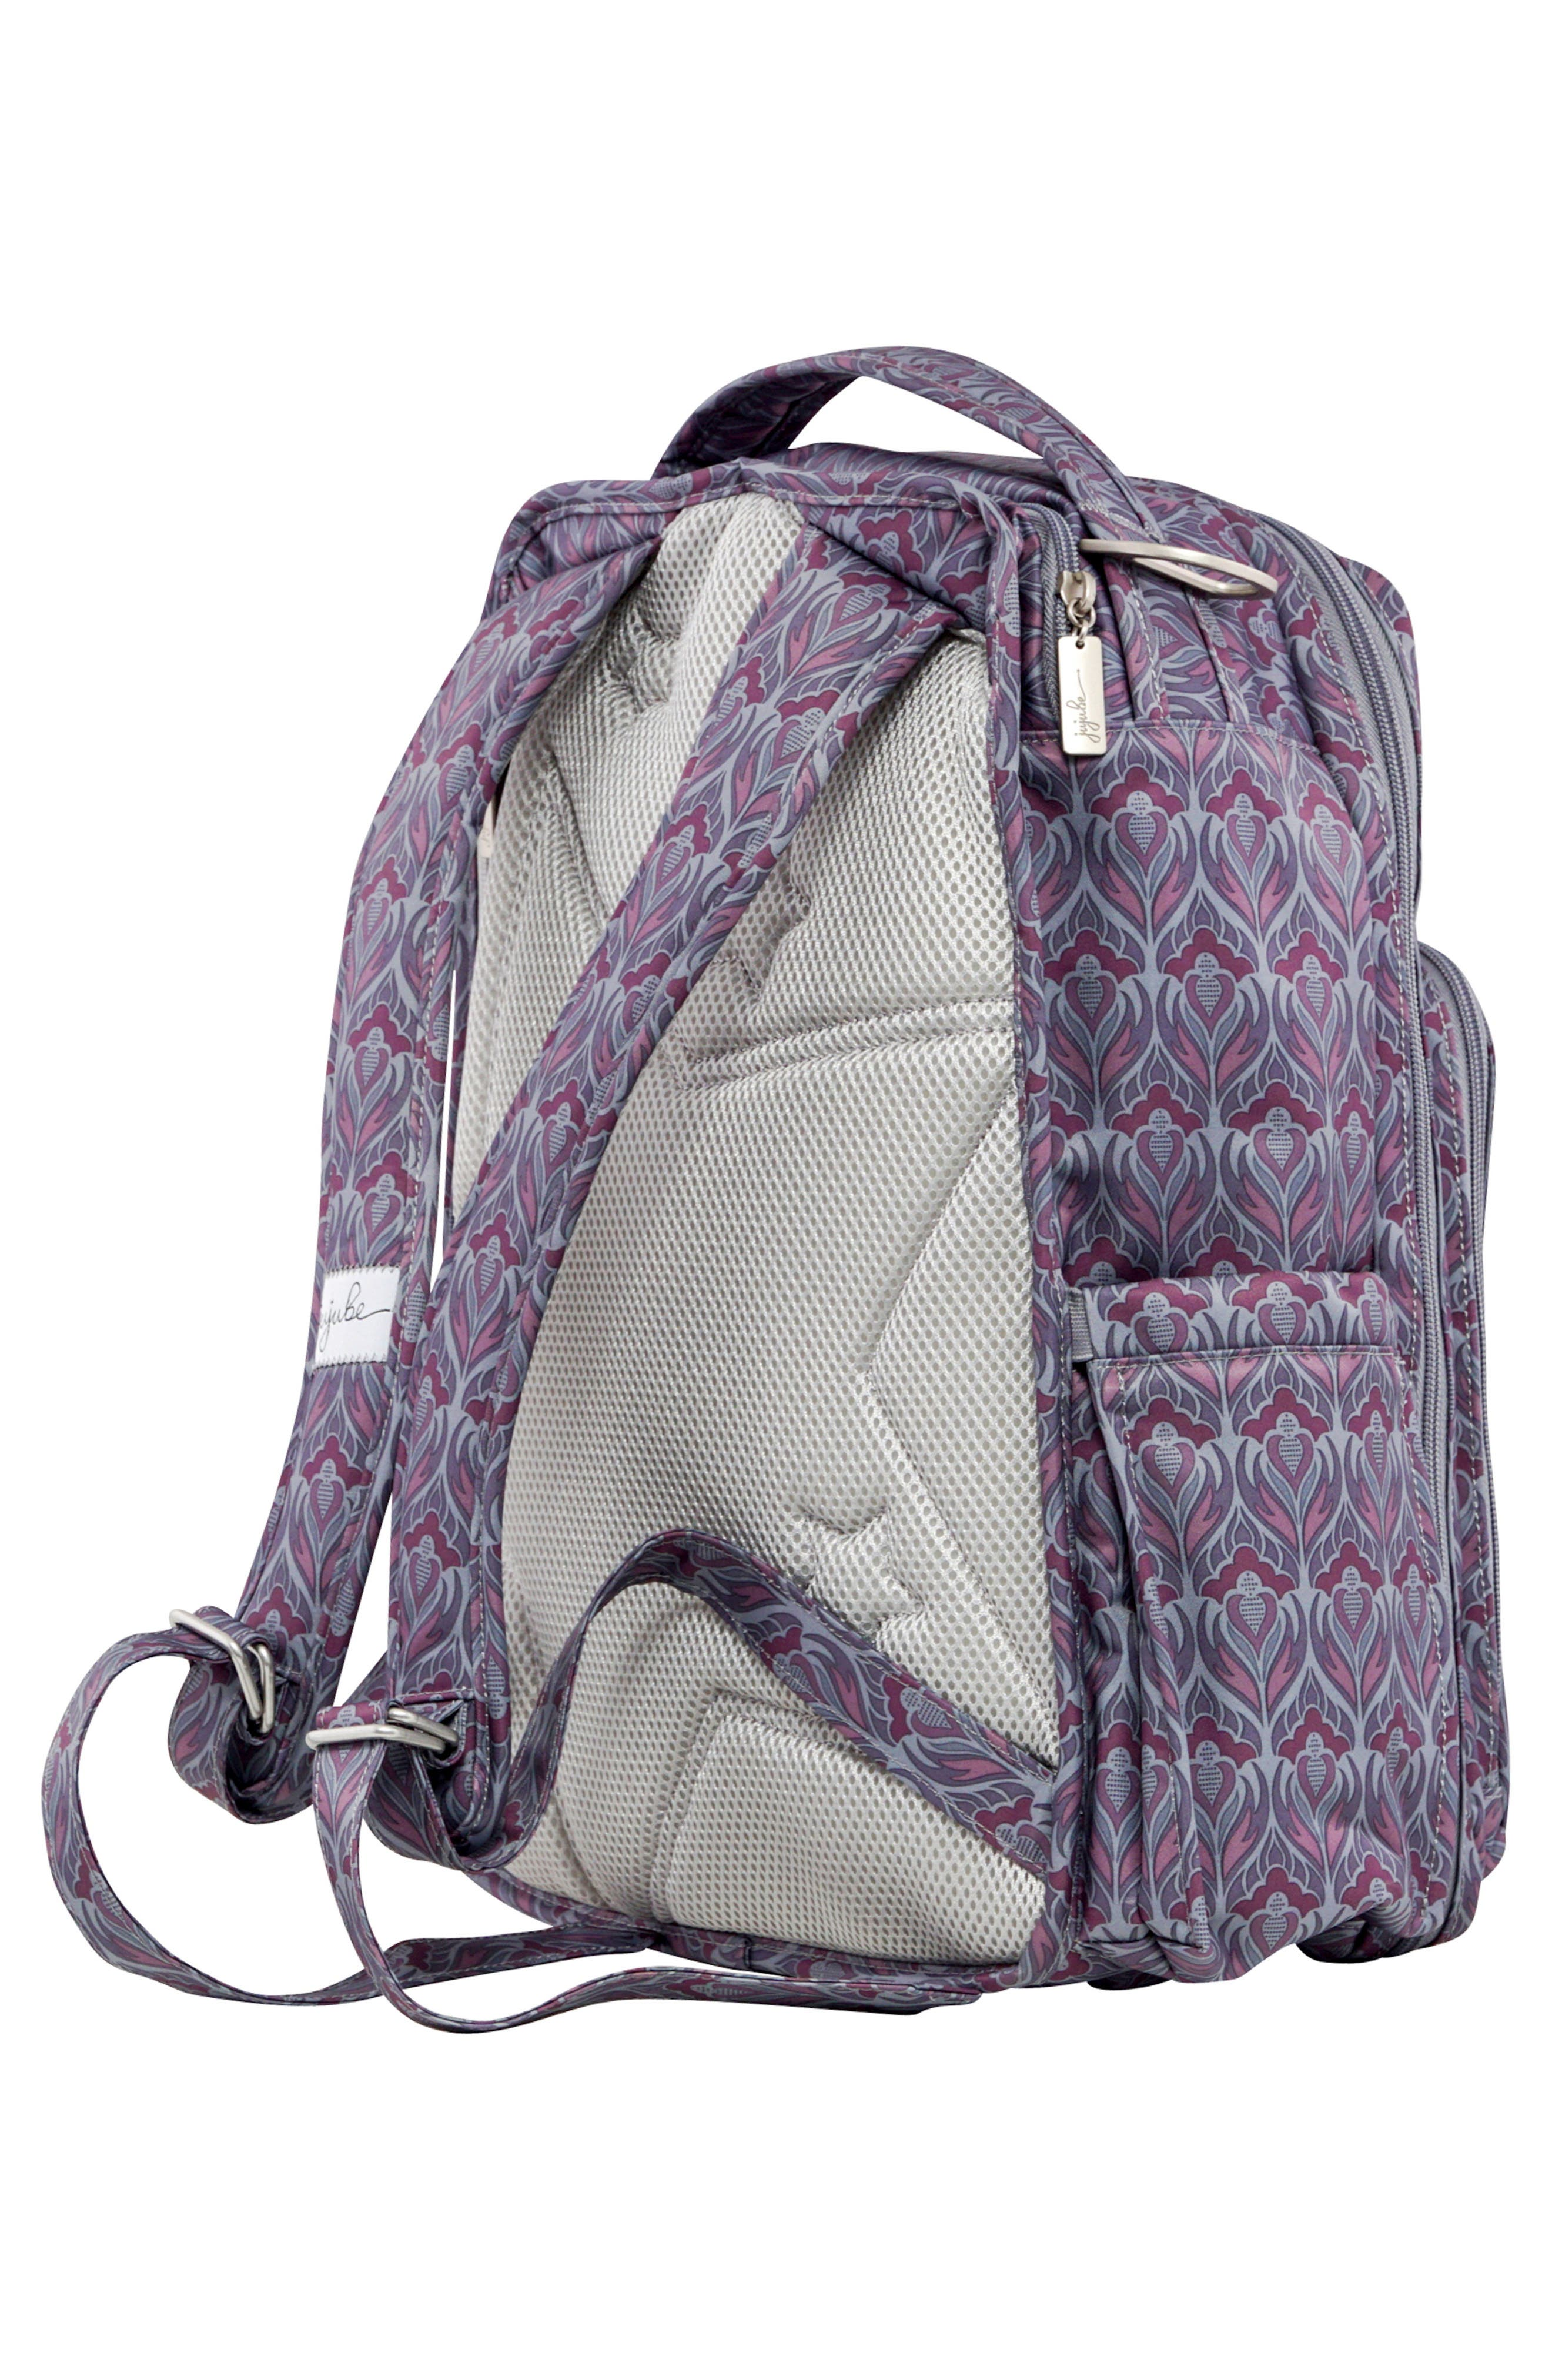 'Be Right Back' Diaper Backpack,                             Alternate thumbnail 73, color,